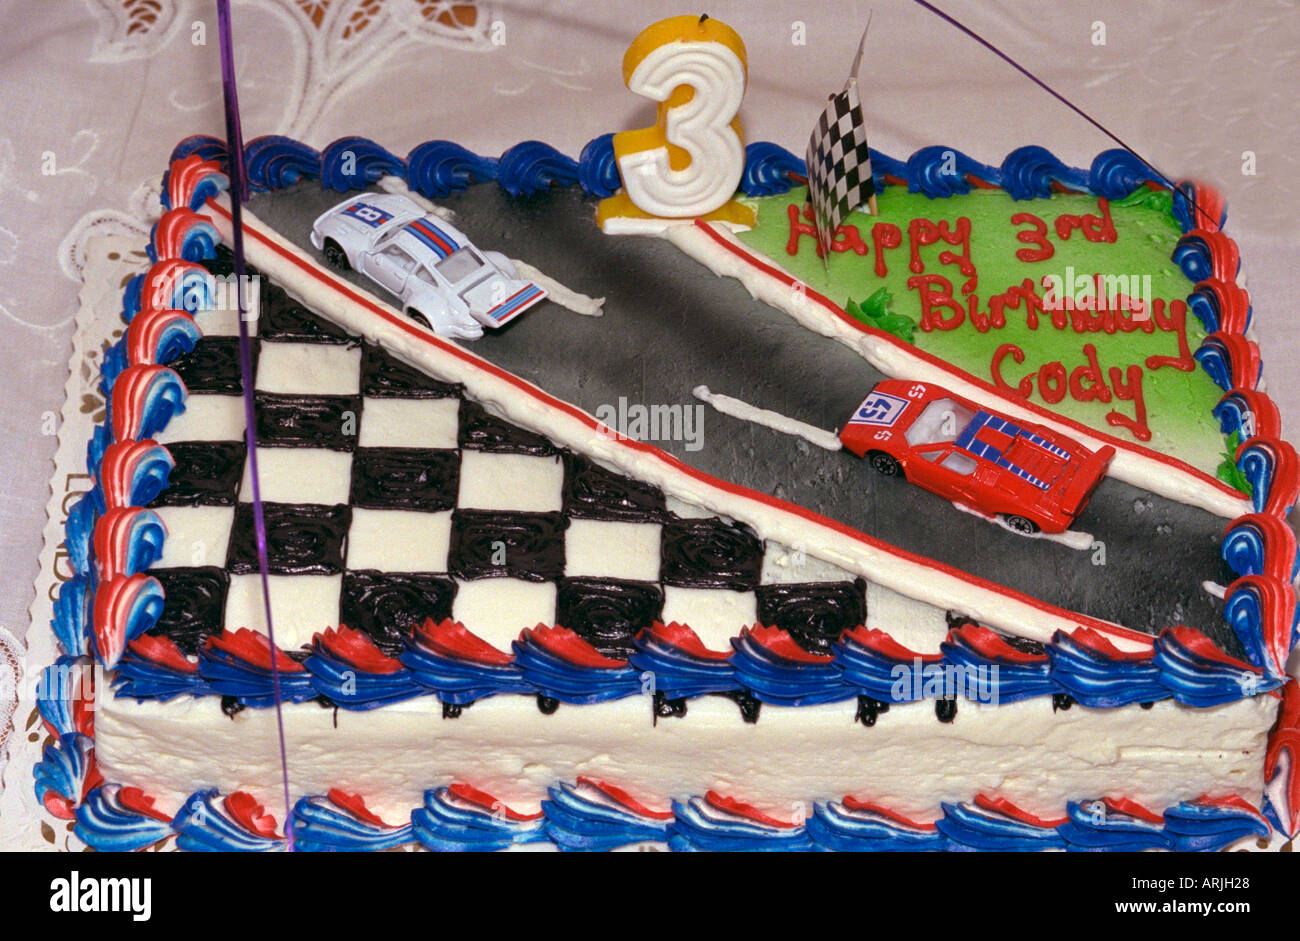 Race car cake waiting to be lit at 3 year old boys birthday party